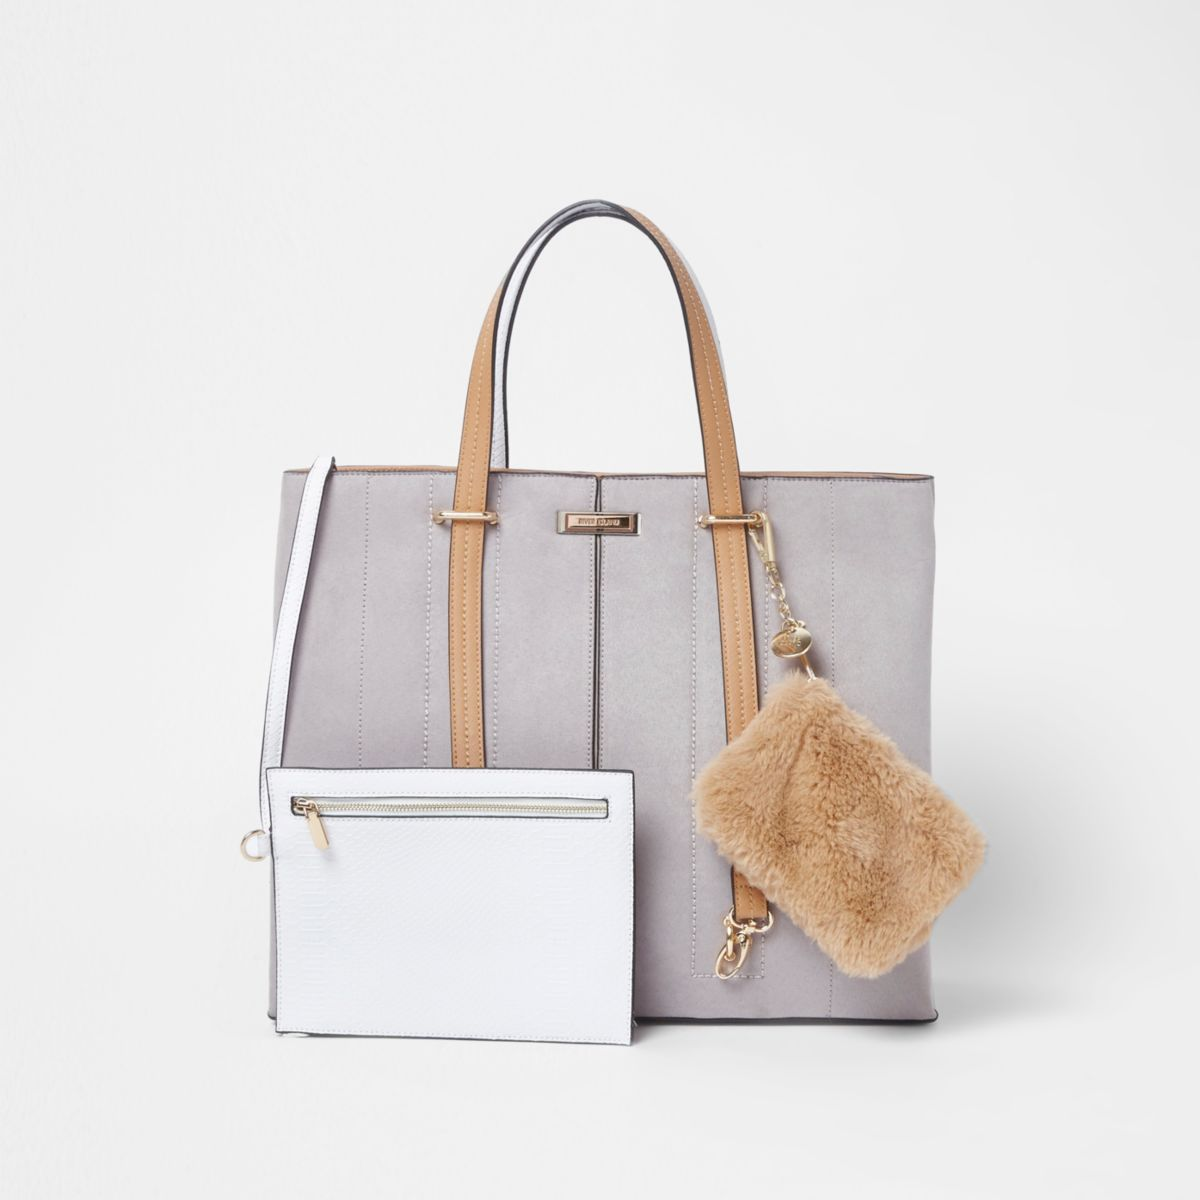 Light grey long handle pouch tote bag